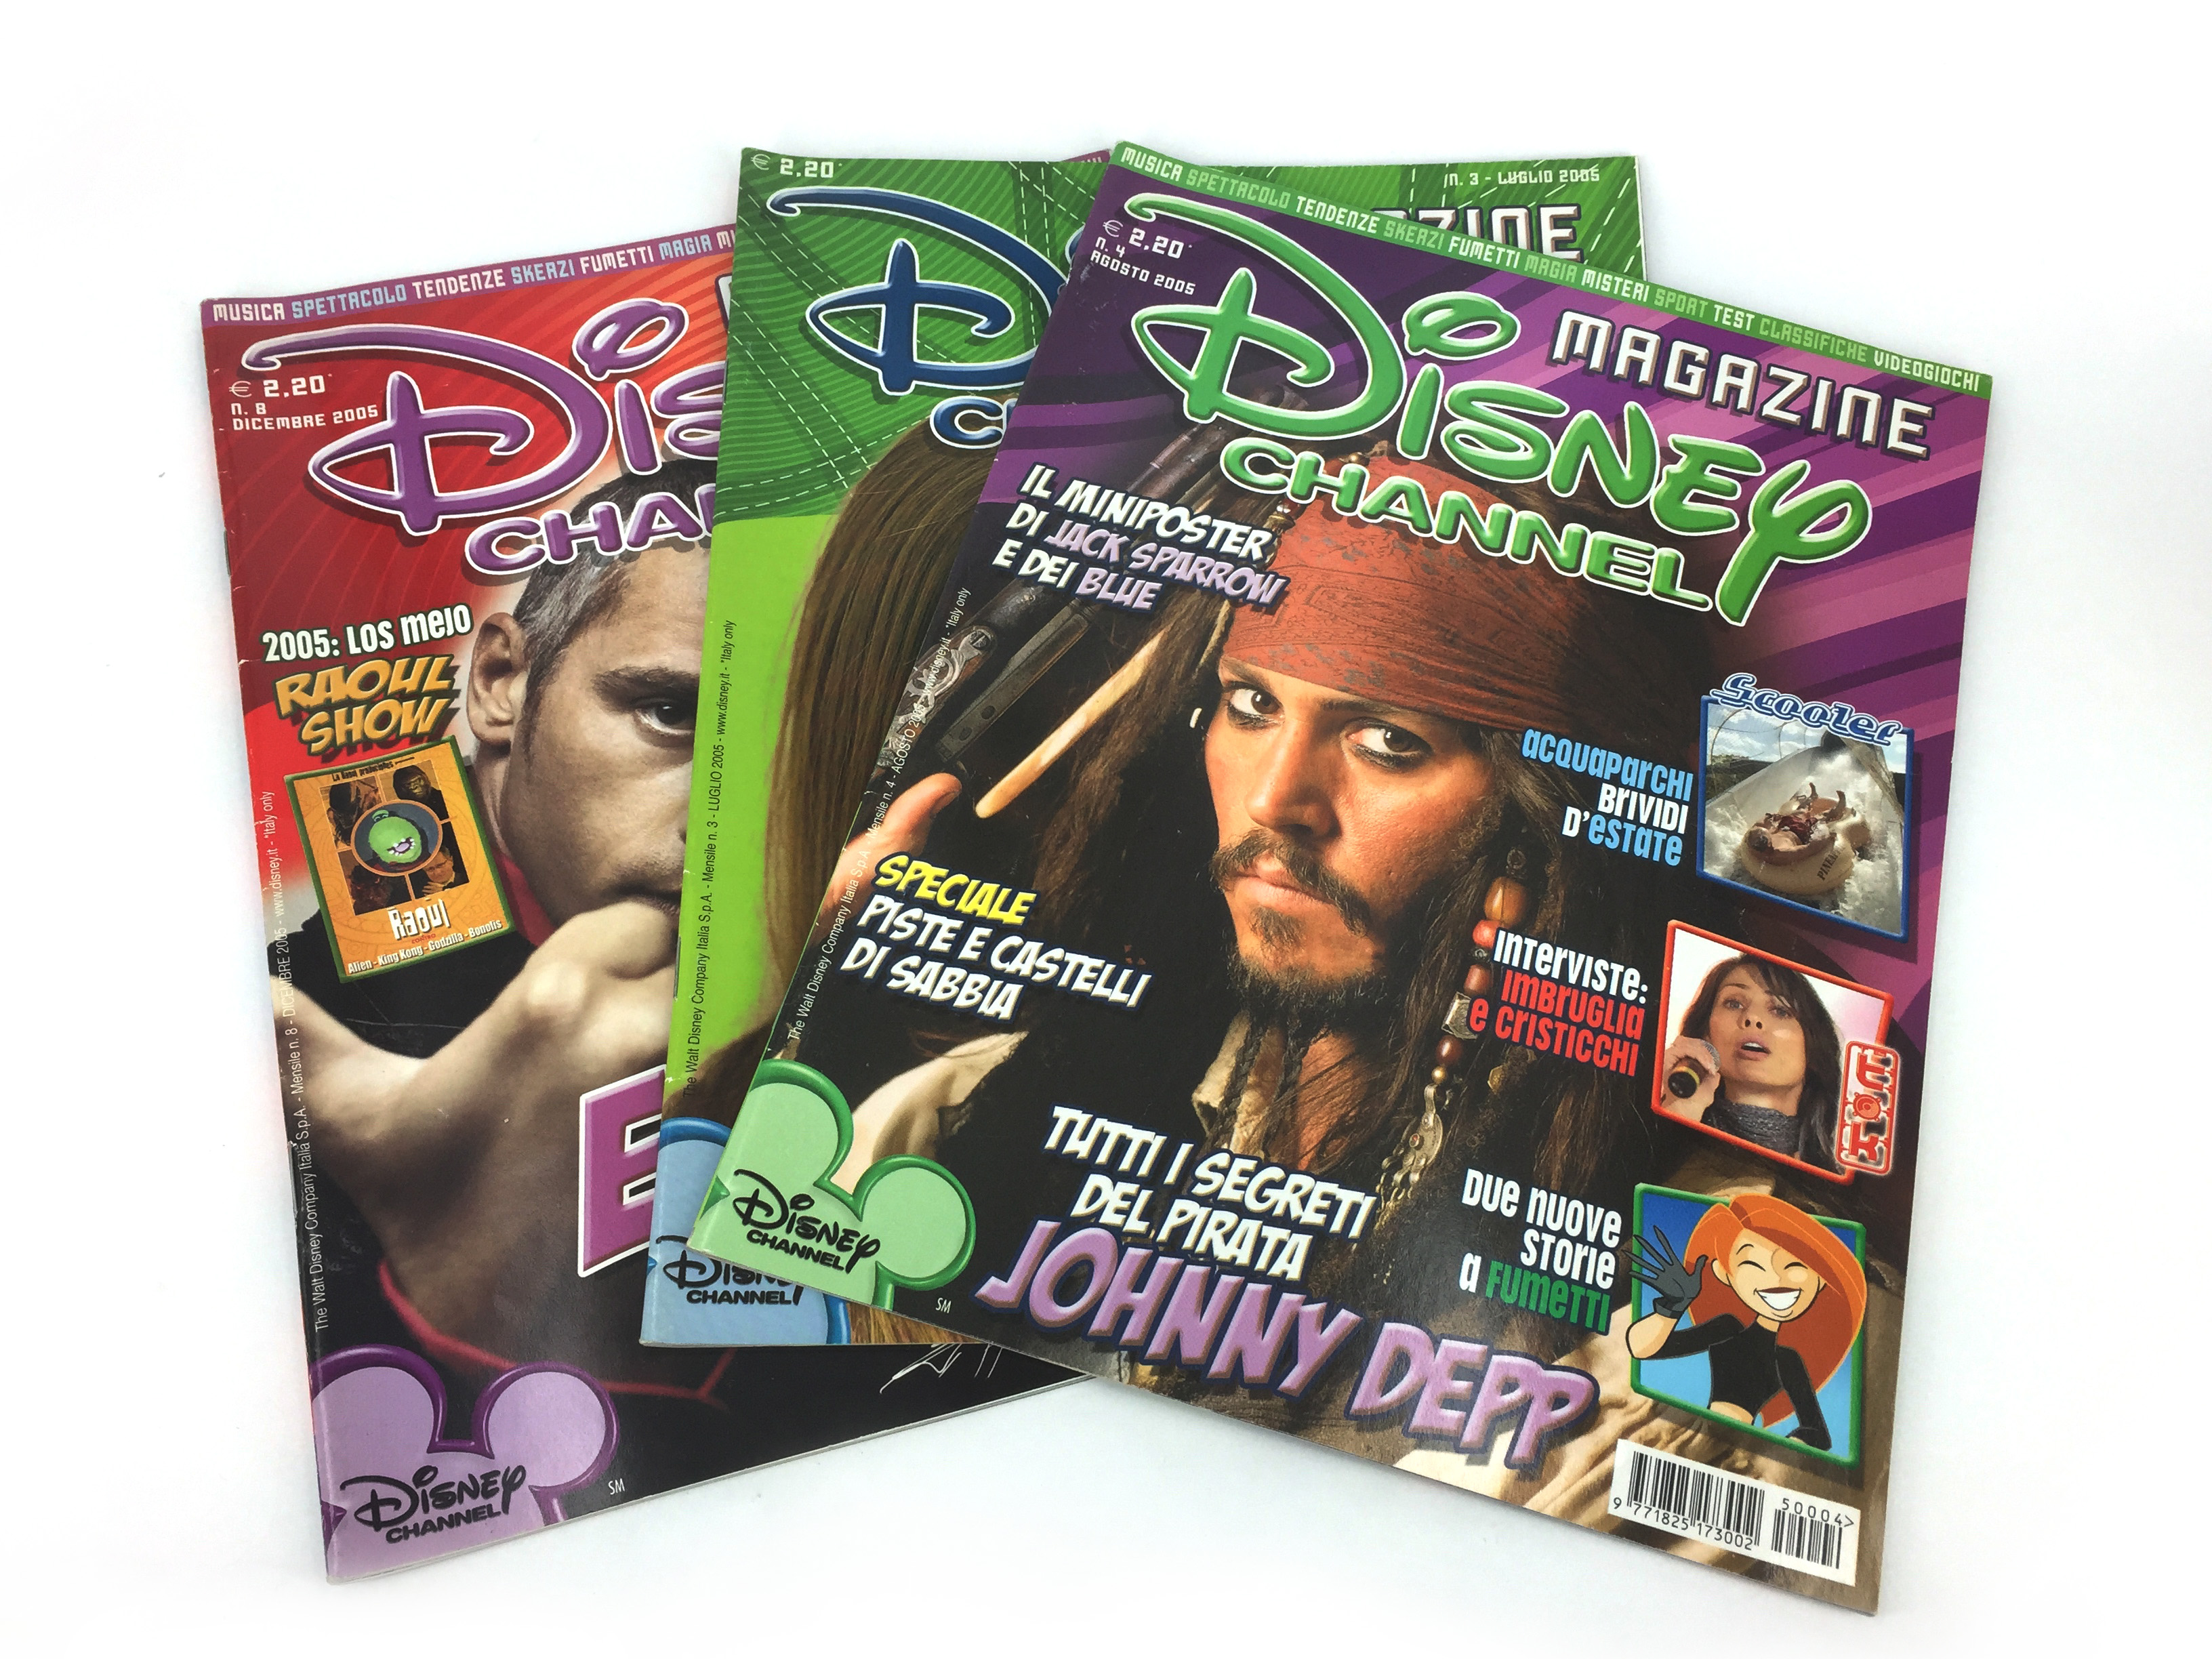 Disney Channel Magazine covers